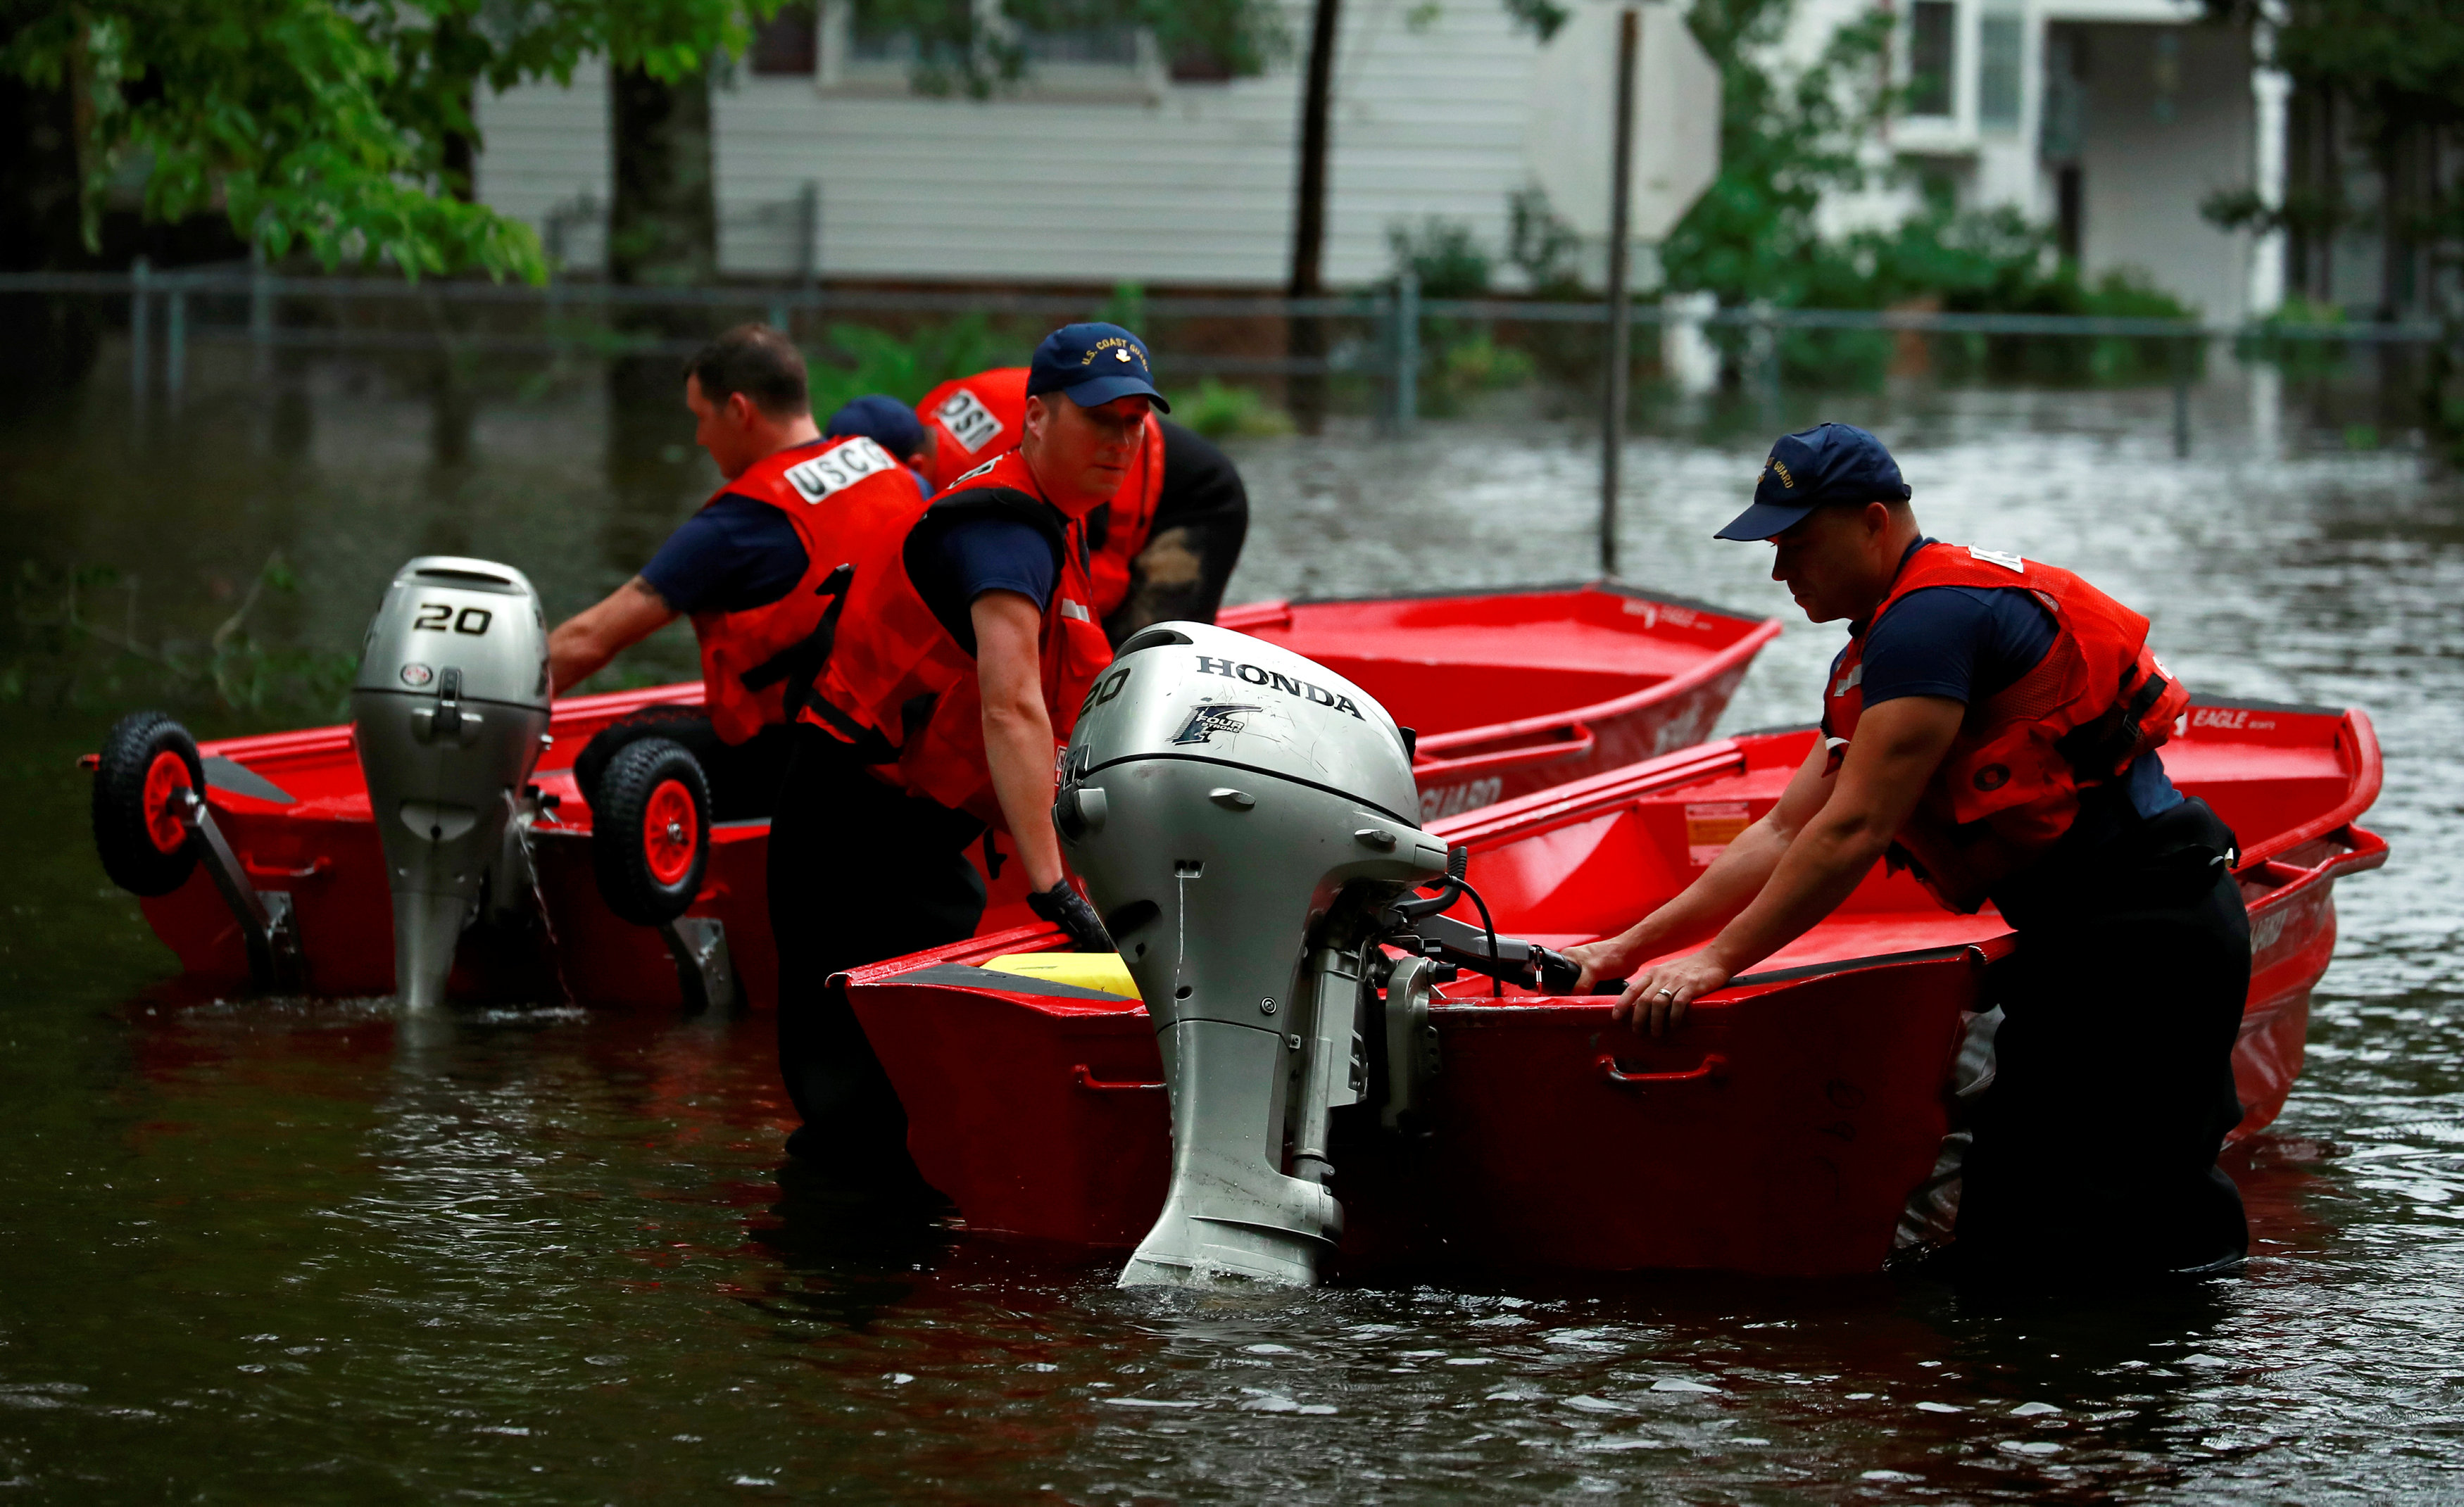 Coast Guard launches rescue boats in the flood waters caused by Hurricane Florence in Lumberton.